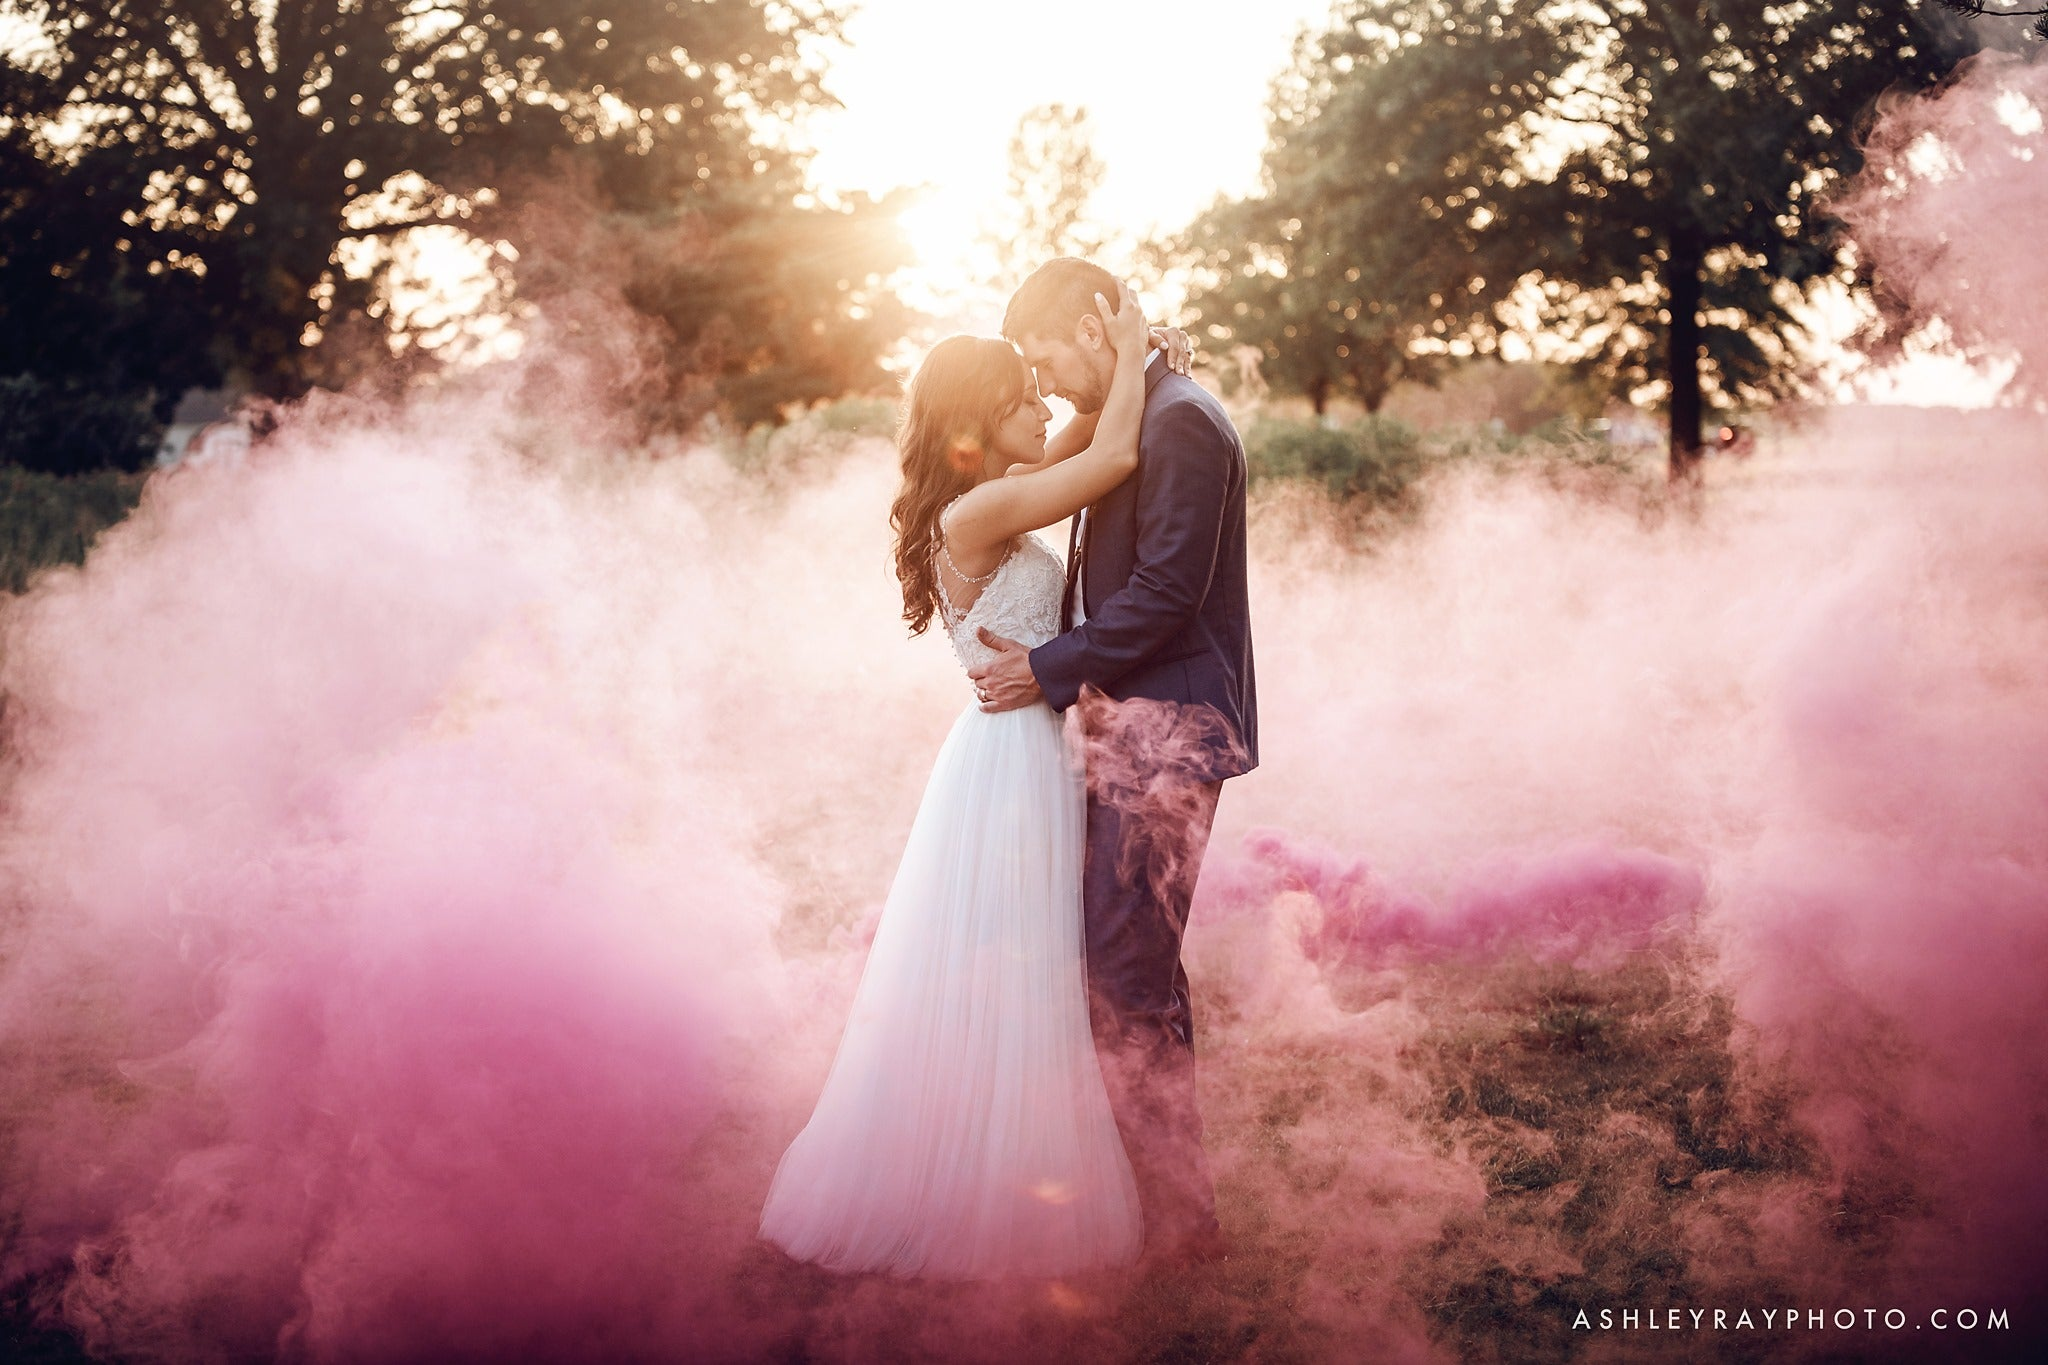 Bride and groom holding each other as a cloud of pink color smoke bomb surrounds them